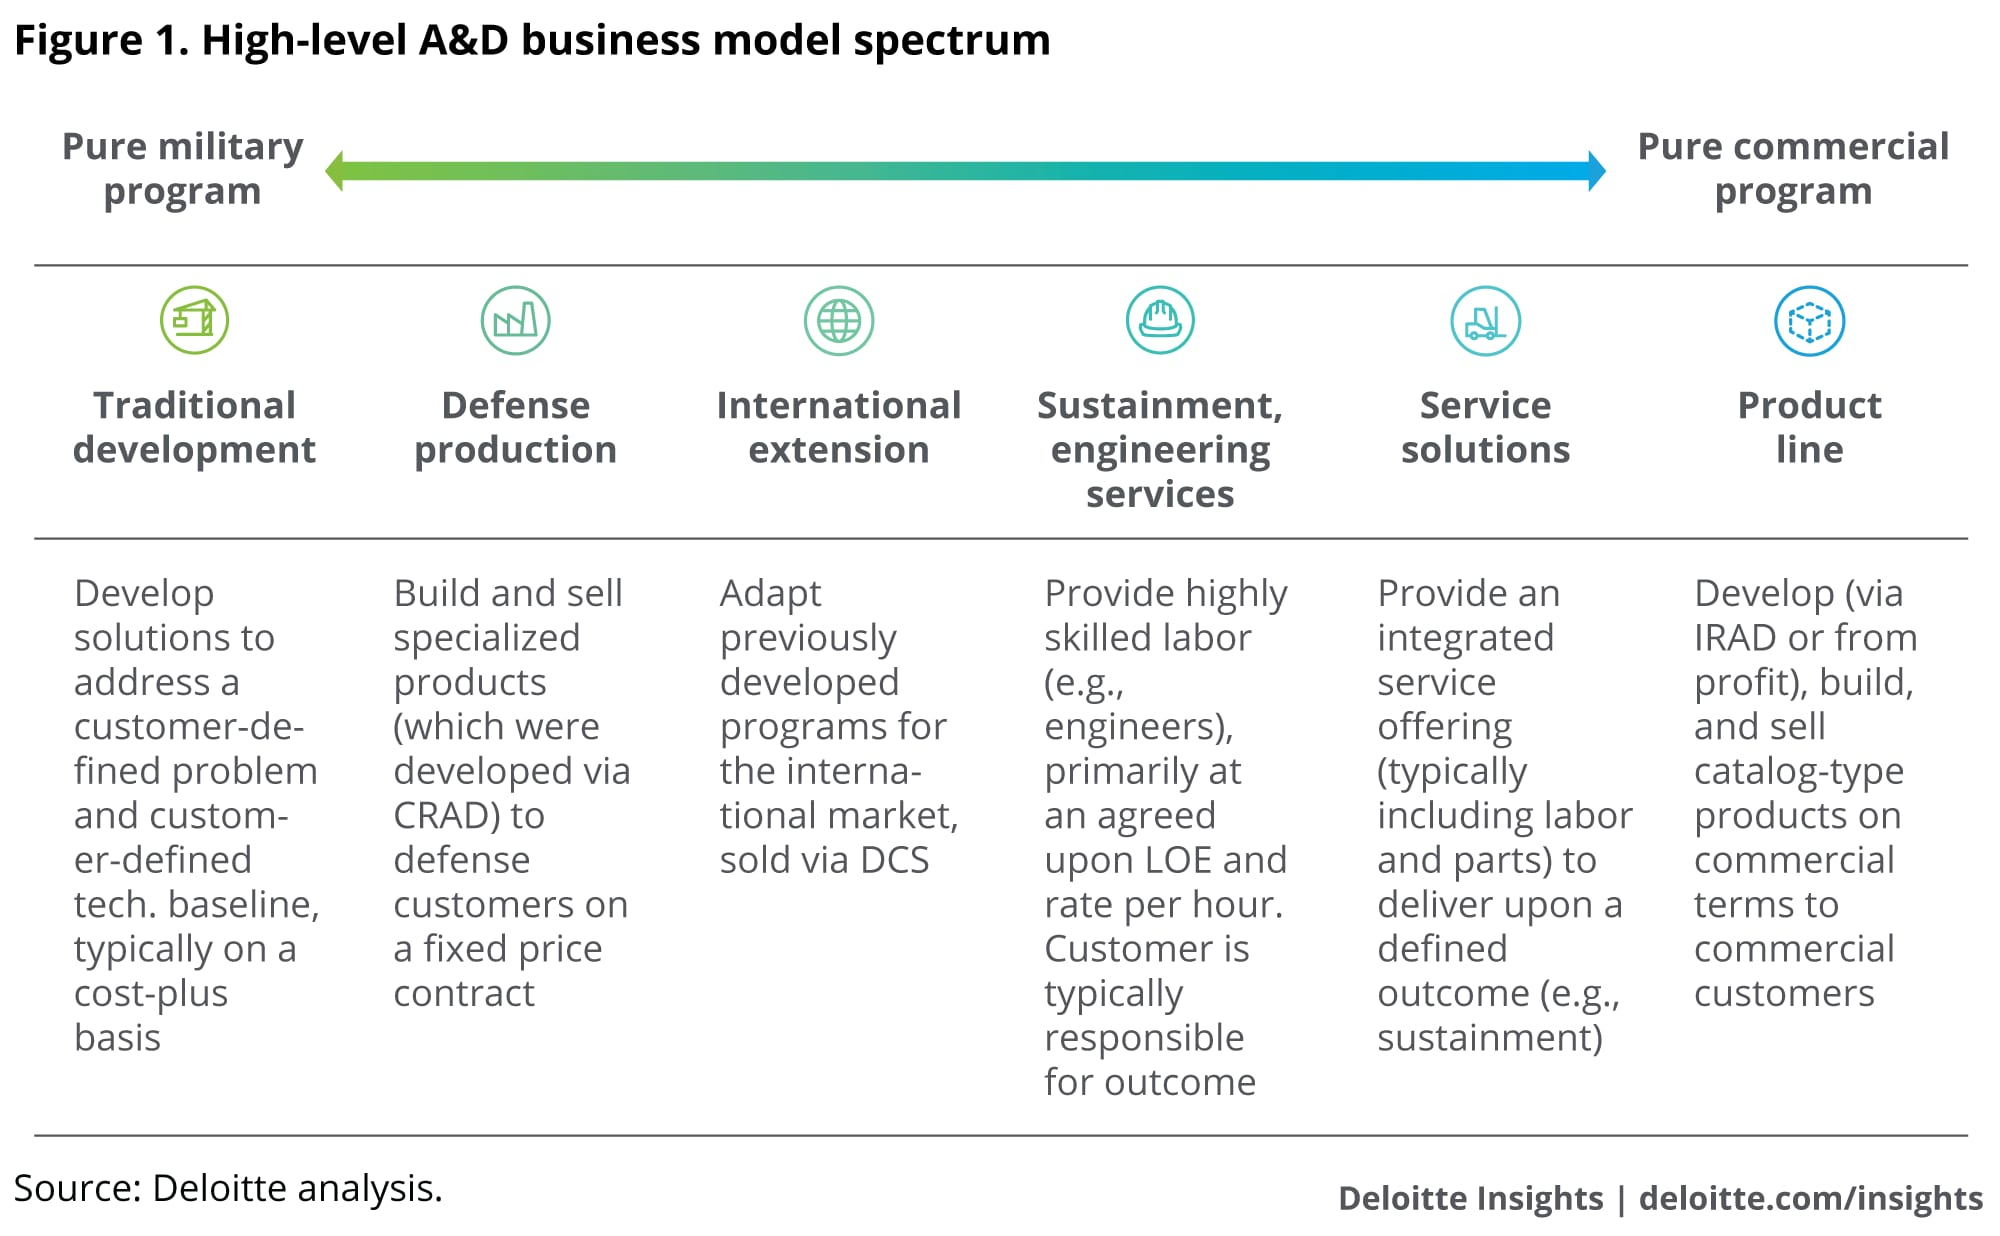 High-level A&D business model spectrum